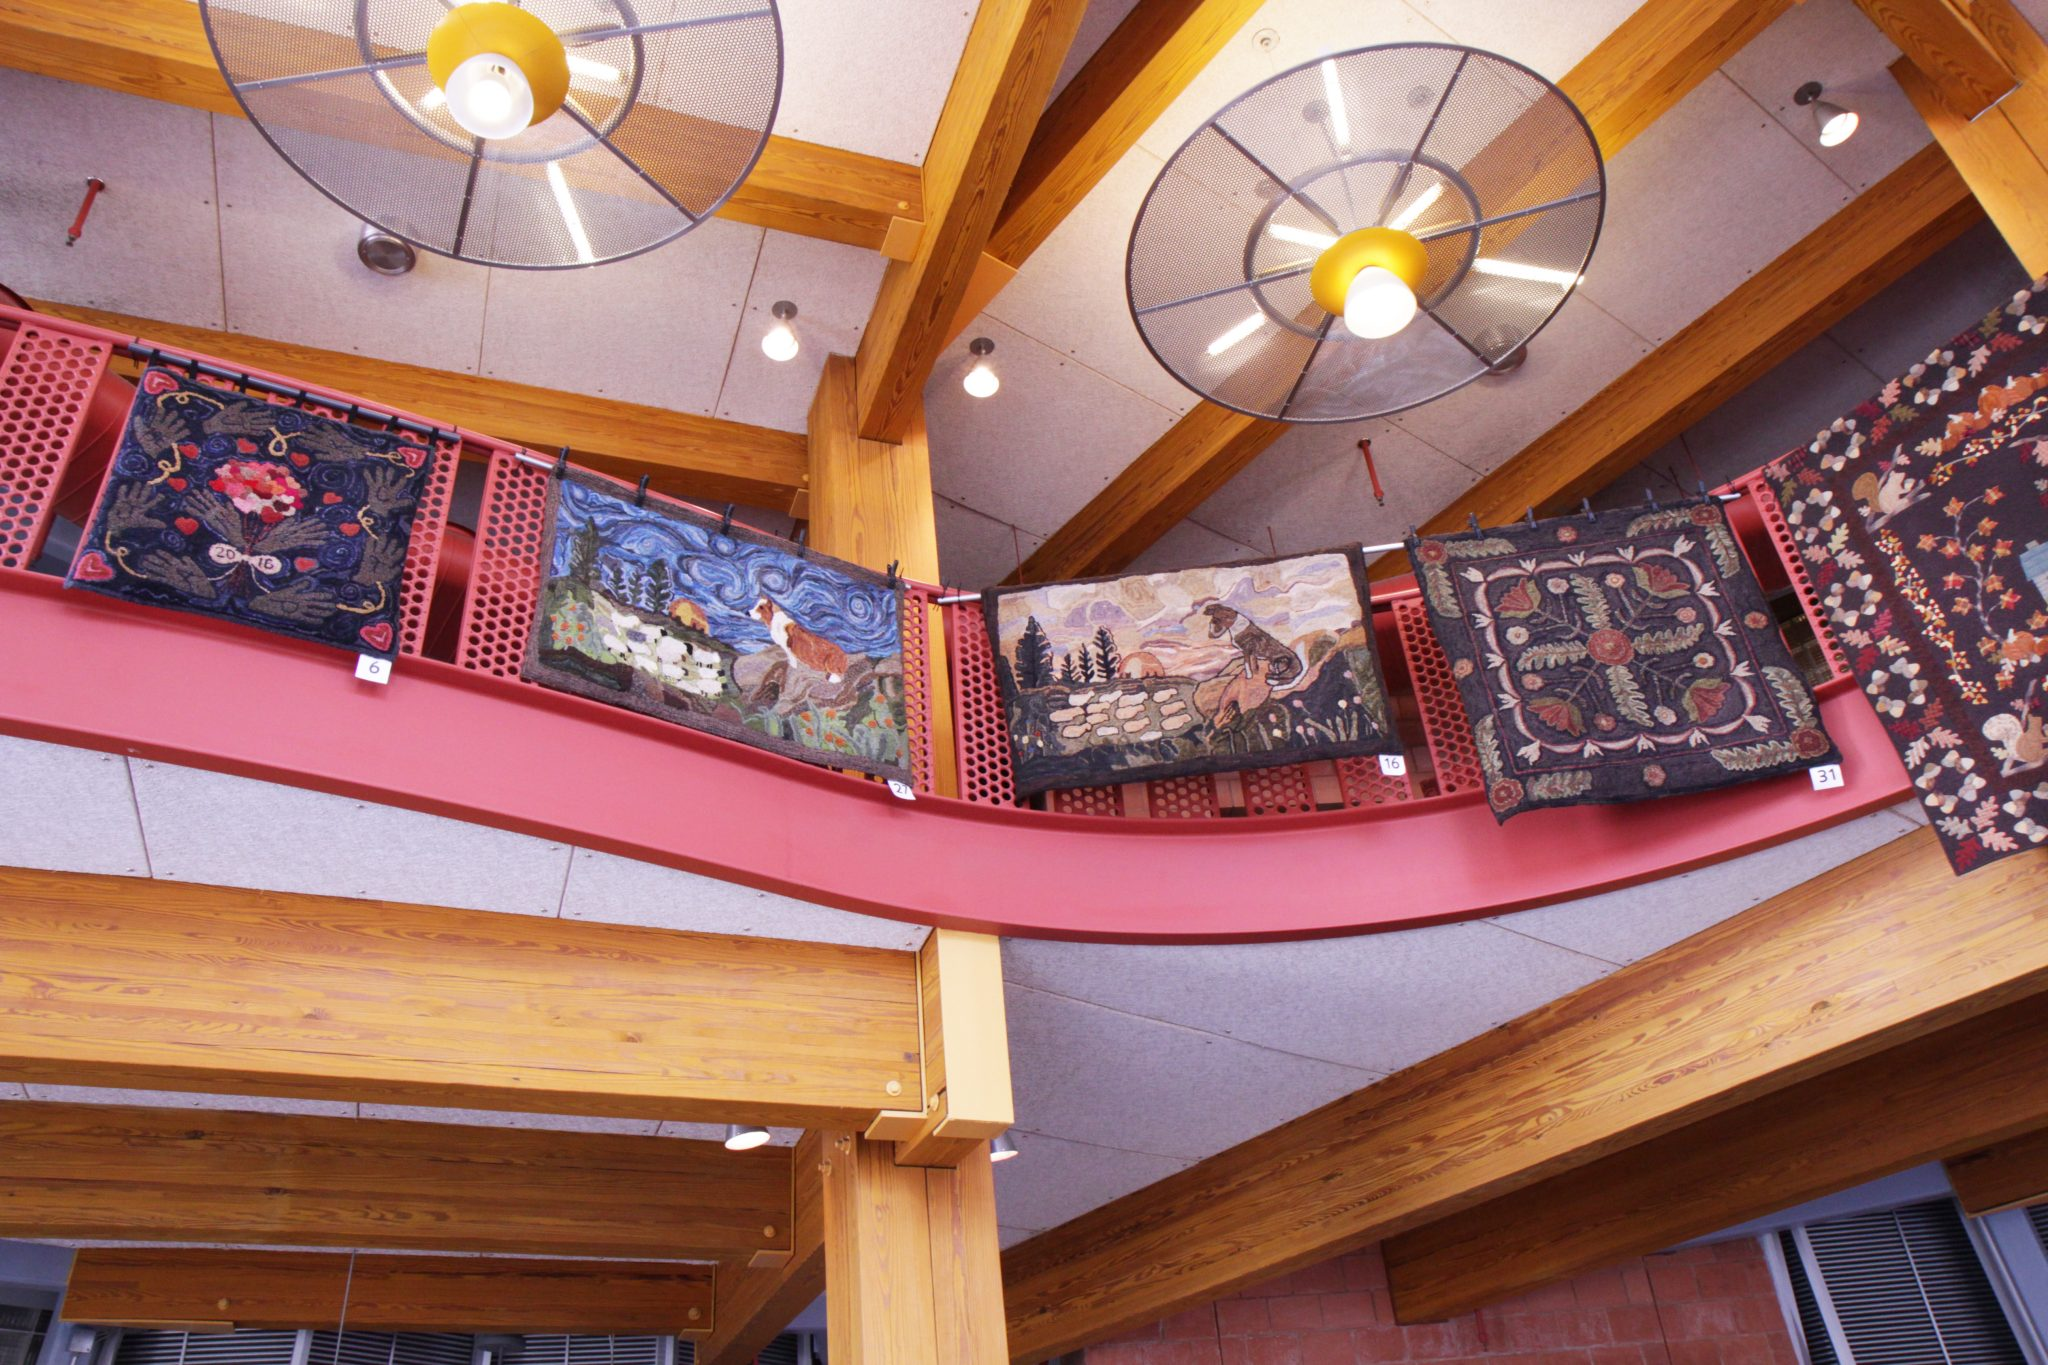 Expanded Quilt Exhibit at the Columbia Public Library